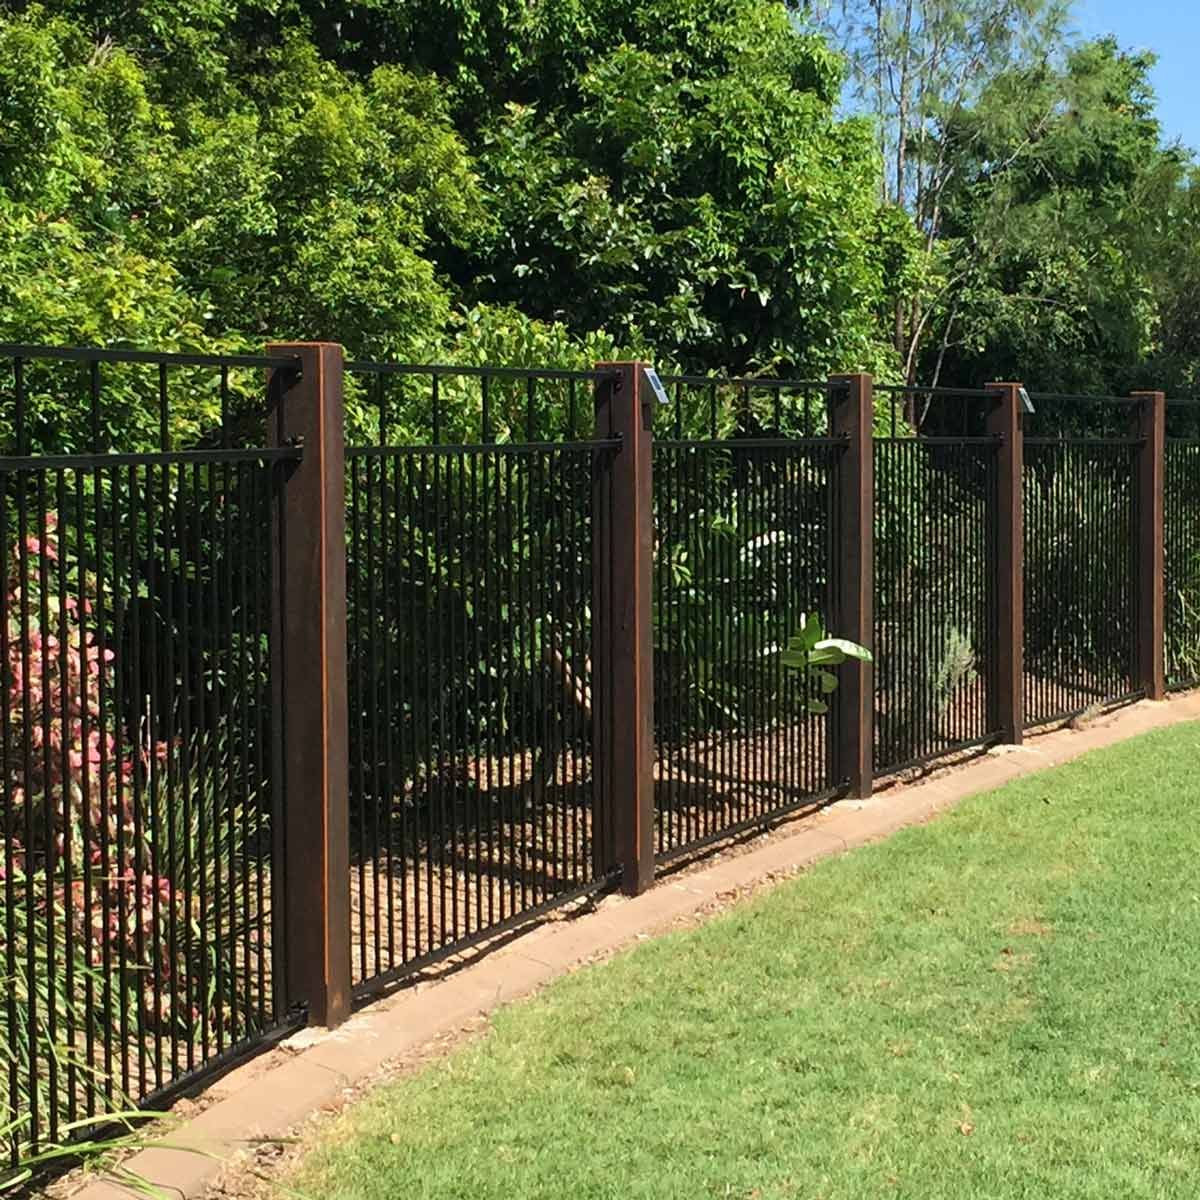 Yard Fencing 10 Modern Fence Ideas Family Handyman for Backyard Fence Ideas Pictures